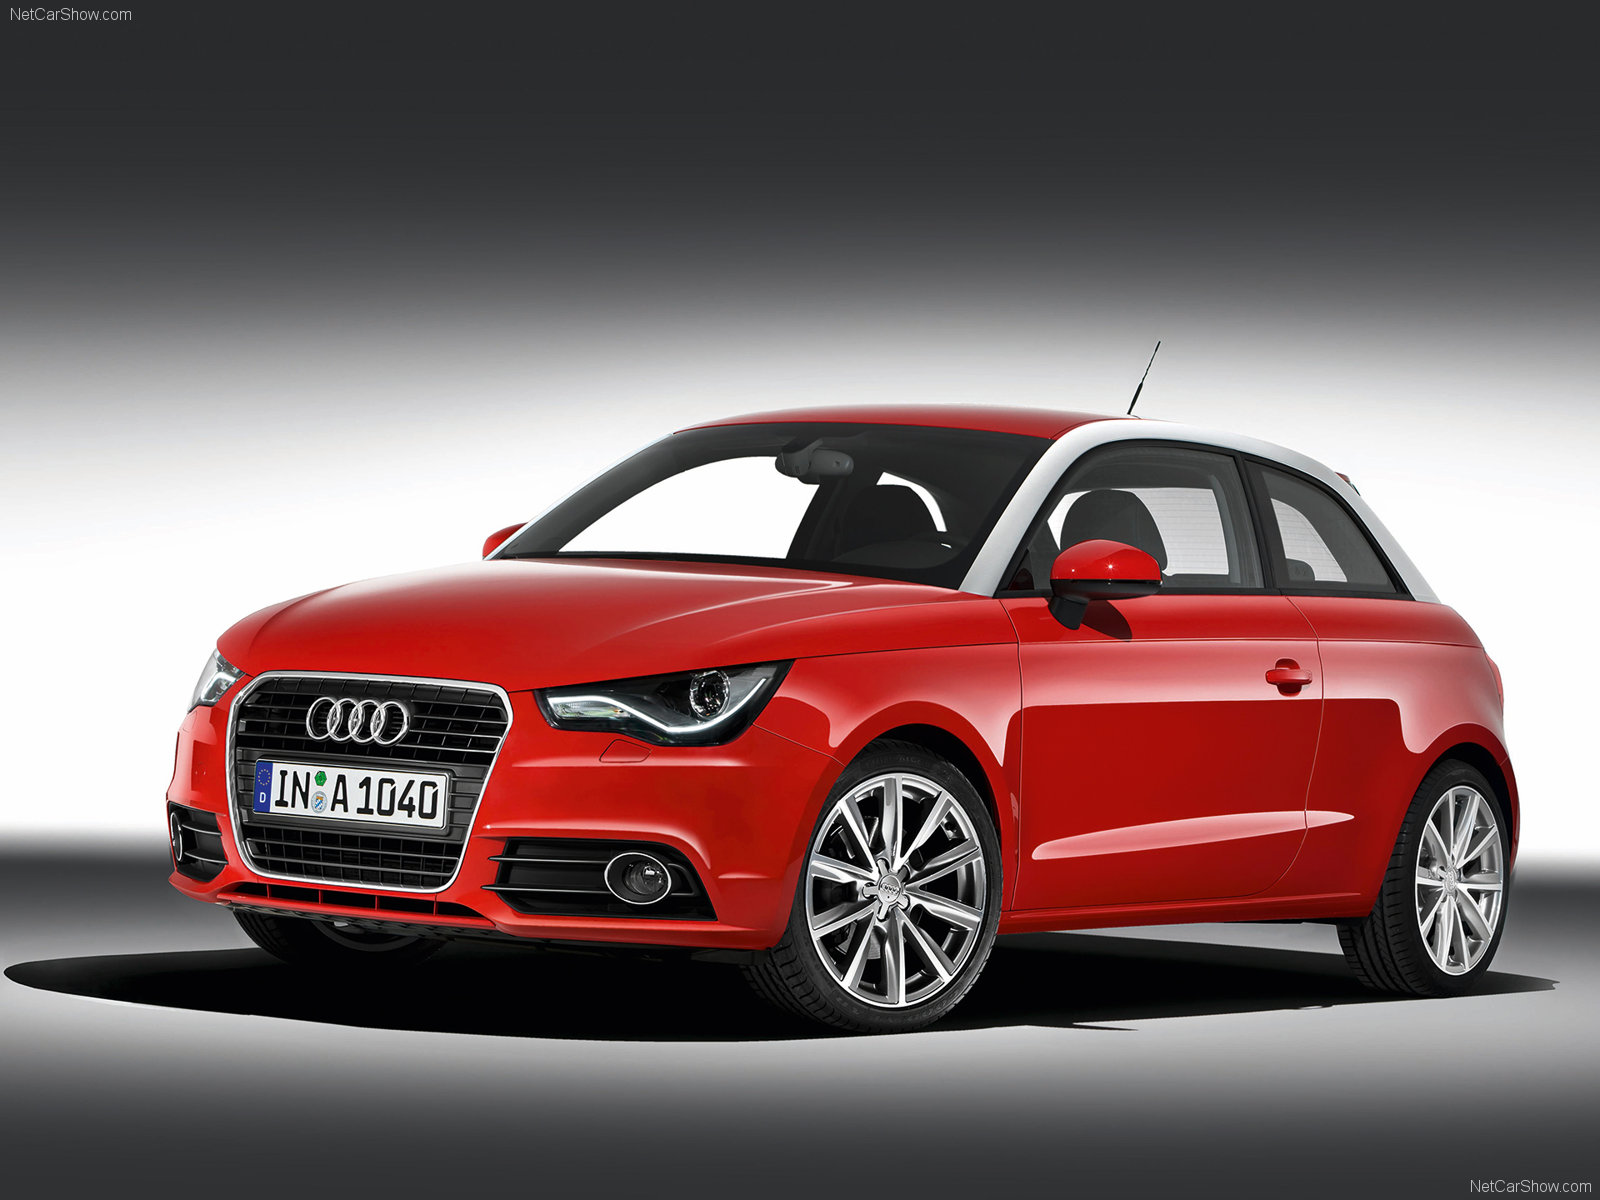 Image Result For Audi A Sportback Cena